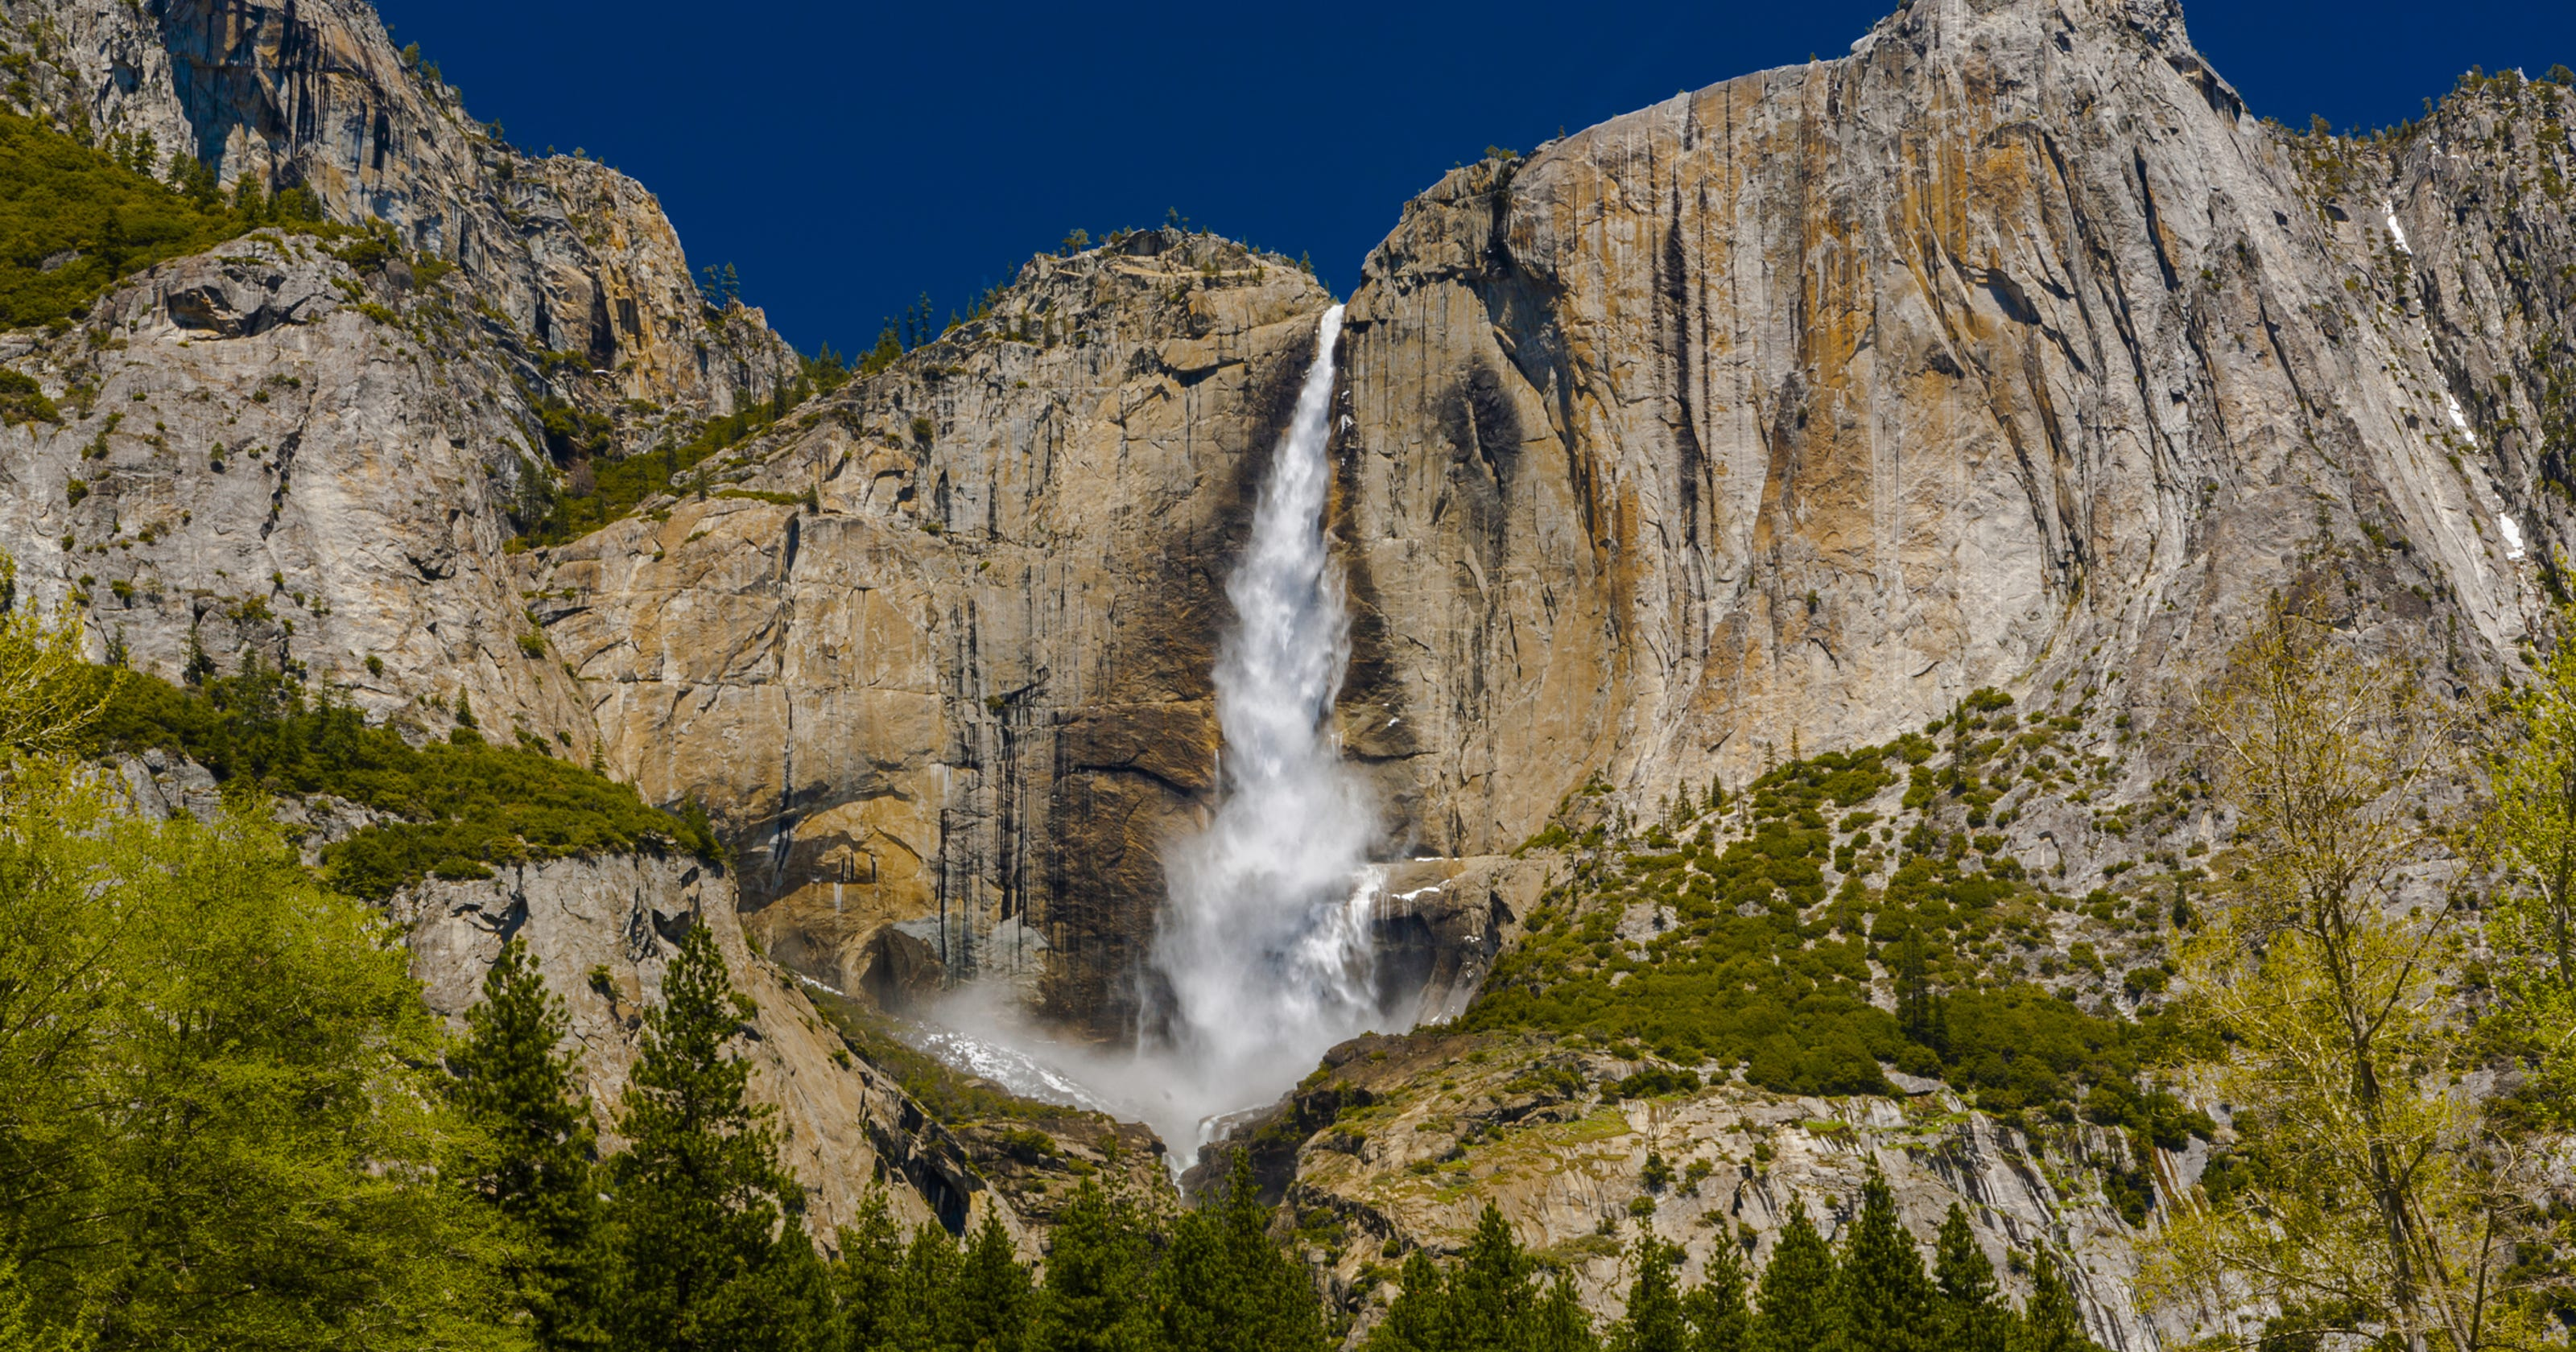 Waterfalls Are Roaring This Spring In Yosemite National Park